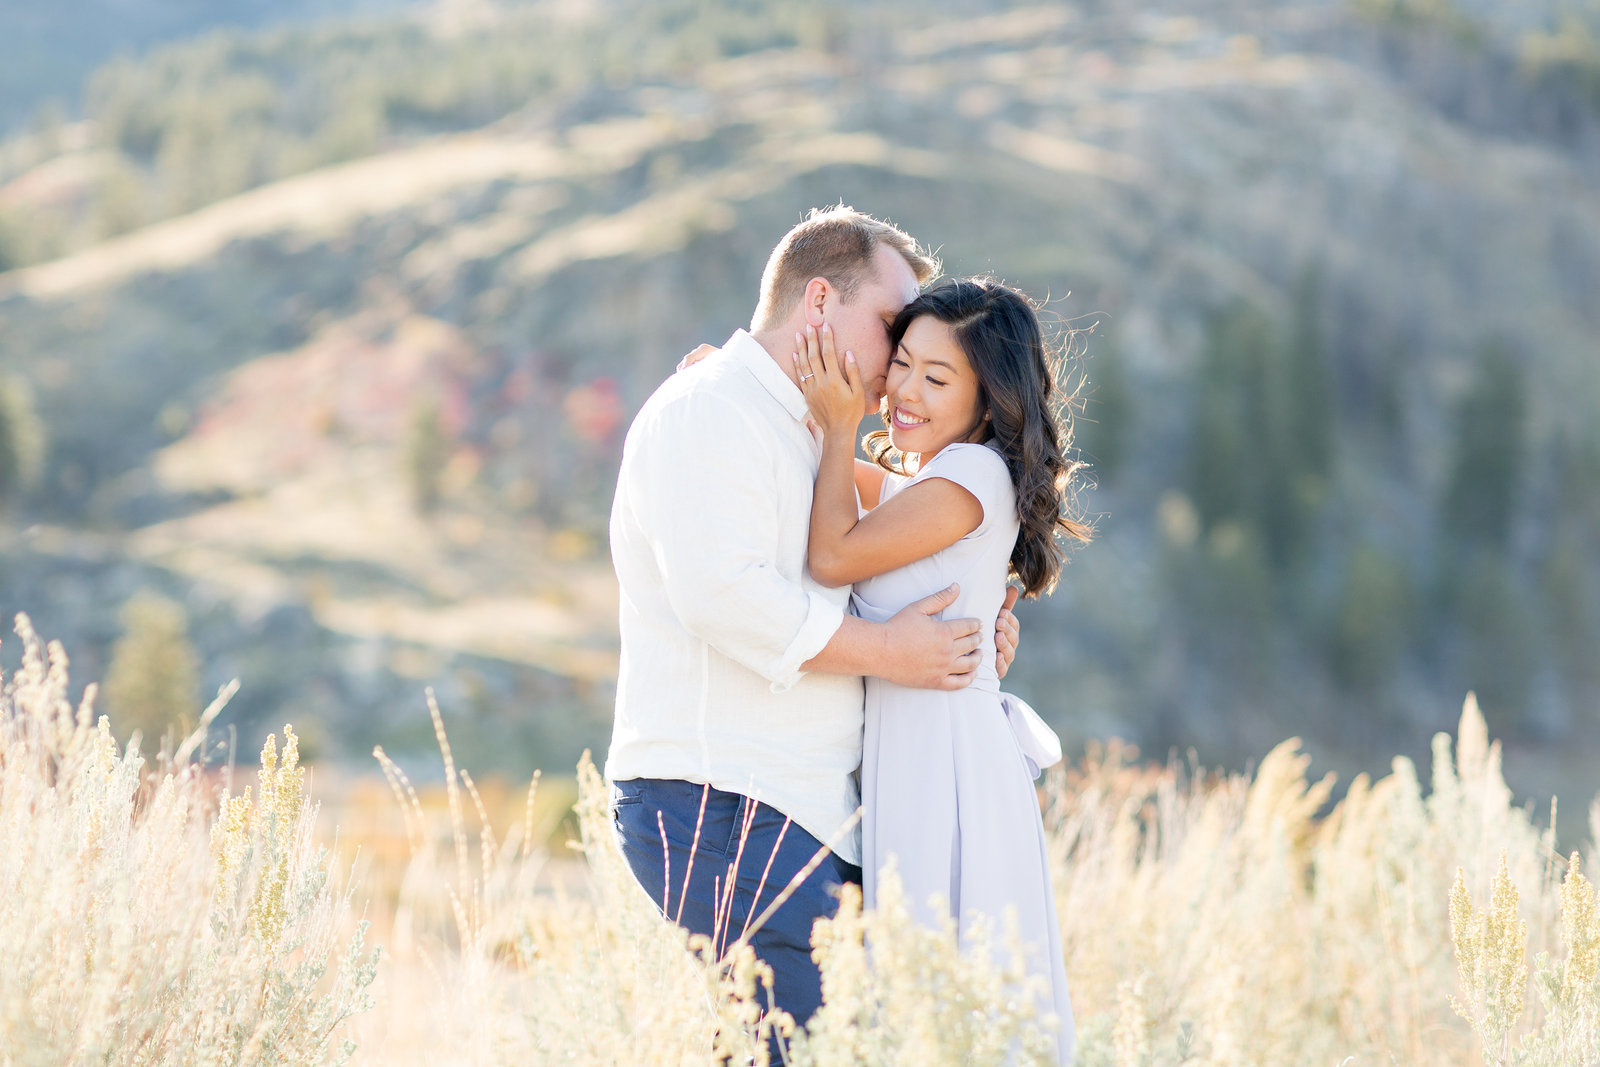 Kyle & Alisa | Previews | Emily Moller Photography  (5 of 14)